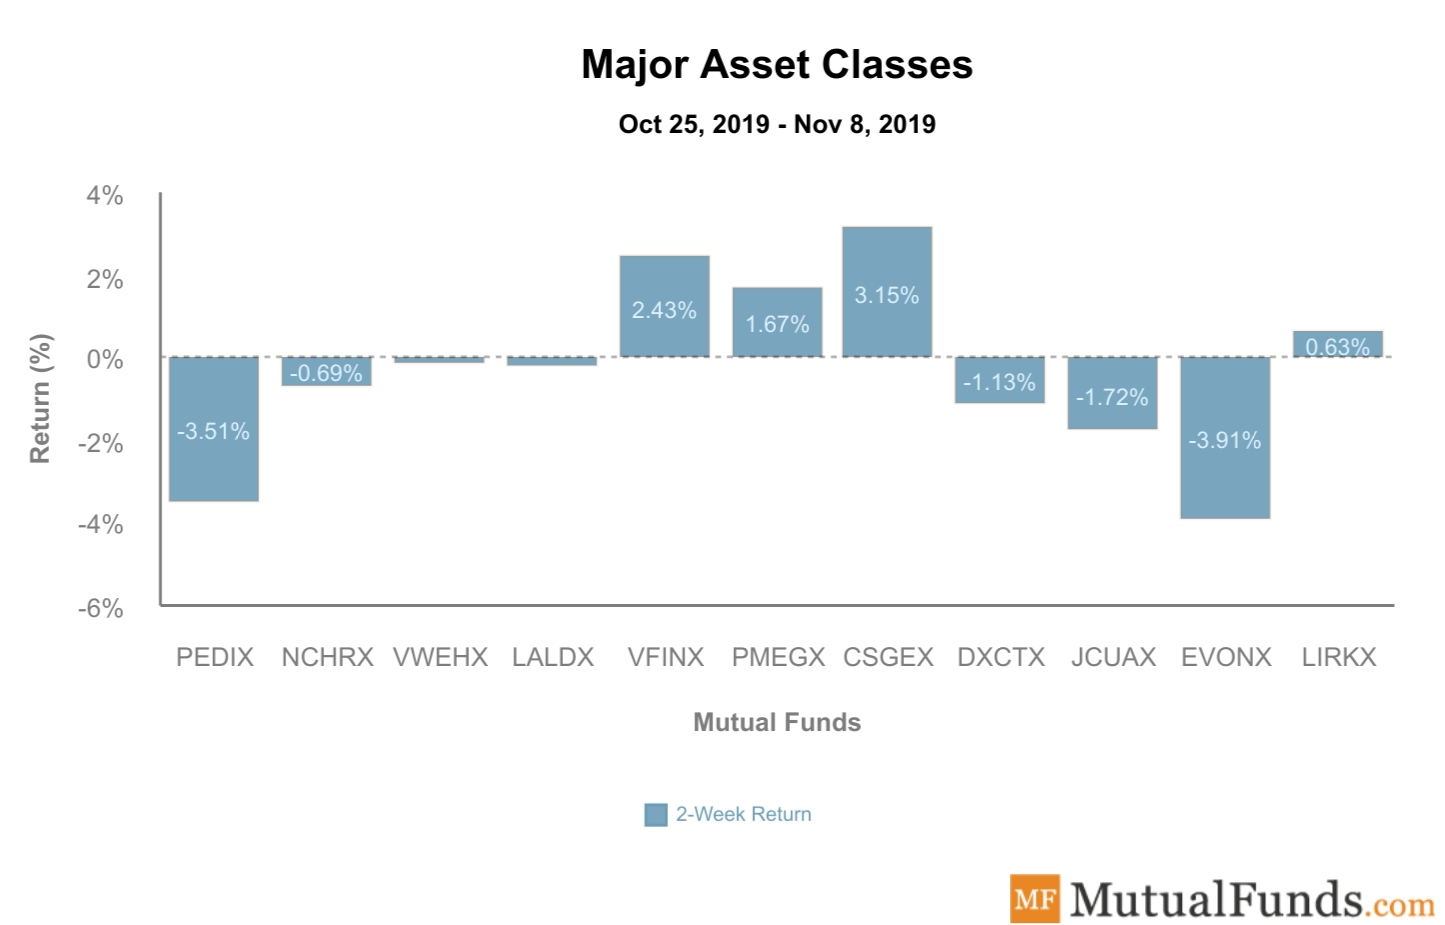 Major Asset Classes Performance Nov 2019